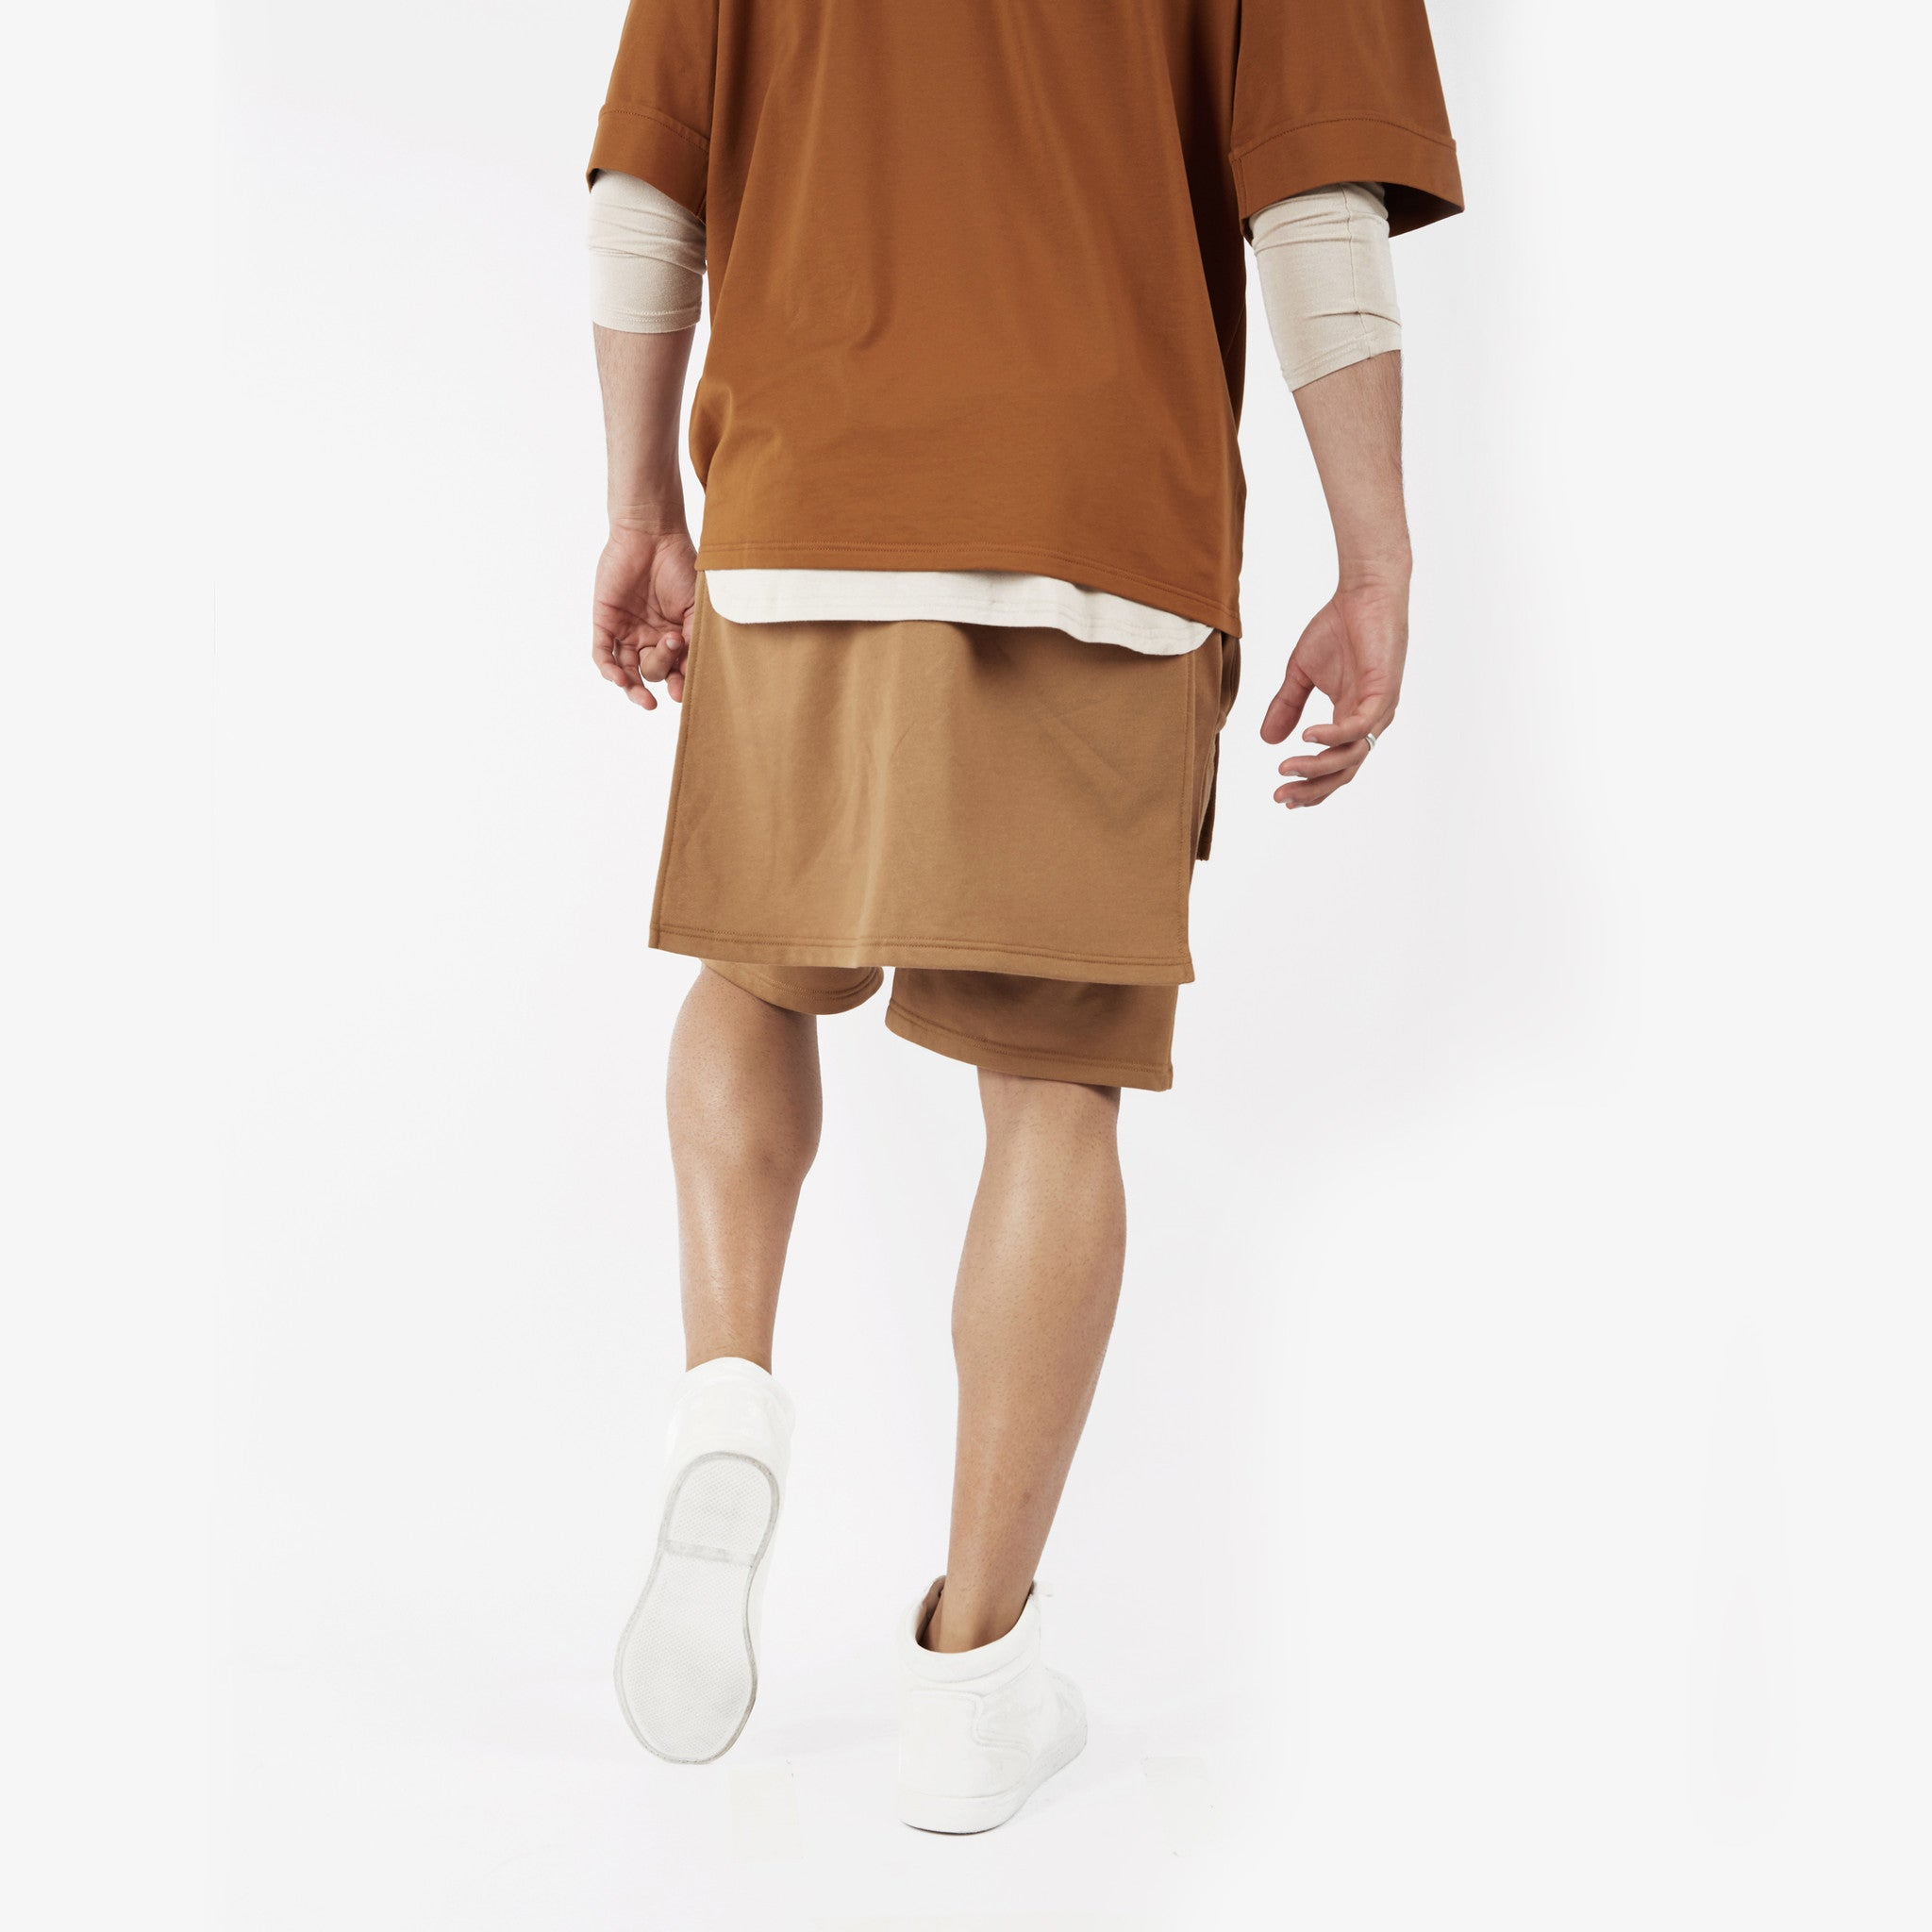 SR054 Layered Shorts - Tan - underated london - underatedco - 5